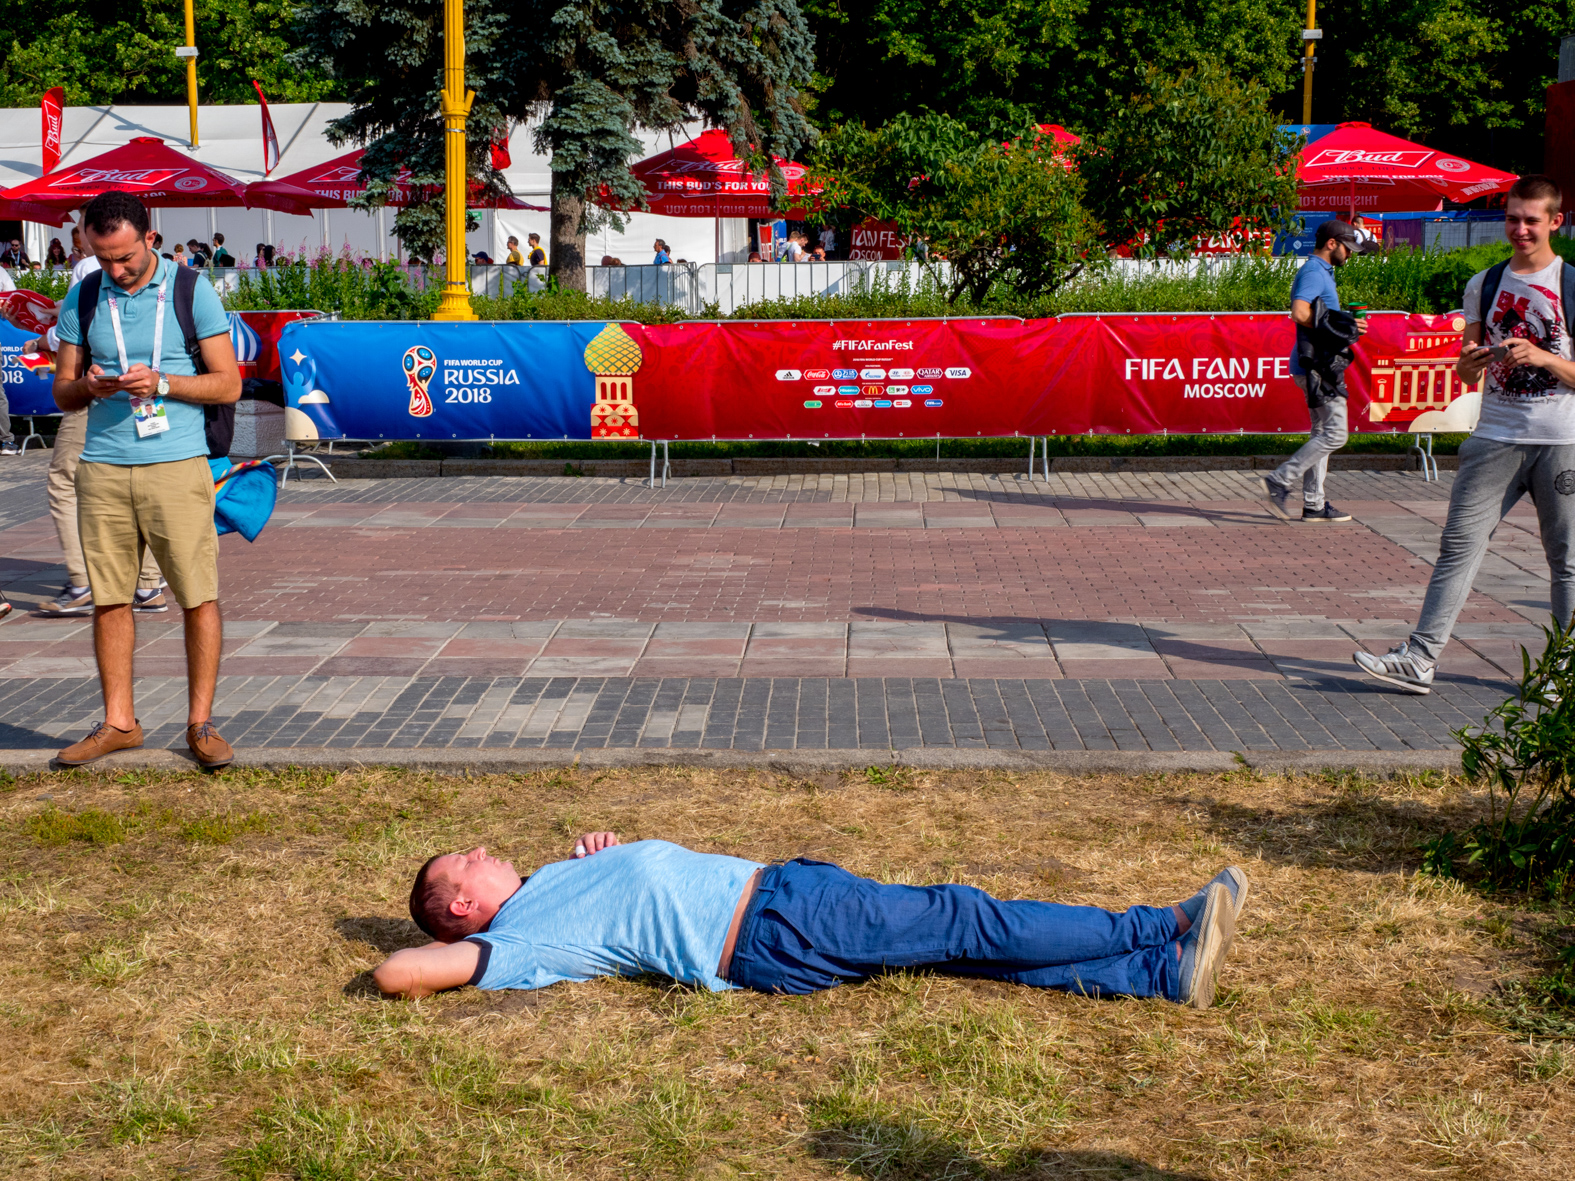 A football fan takes a break.The FIFA Fan Fest located at Vorobyovy Gory (Sparrow Hills) Moscow, has a venue Capacity of 25,000. The site provides a spectacular view down the hill, directly towards Luzhniki Stadium and Moscow City. The 21st FIFA World Cup football tournament took place in Russia in 2018. It was the first World Cup to be held in Eastern Europe and the eleventh time that it has been held in Europe. For the first time the tournament took place on two continents – Europe and Asia. All but two of the stadium venues were in European Russia.